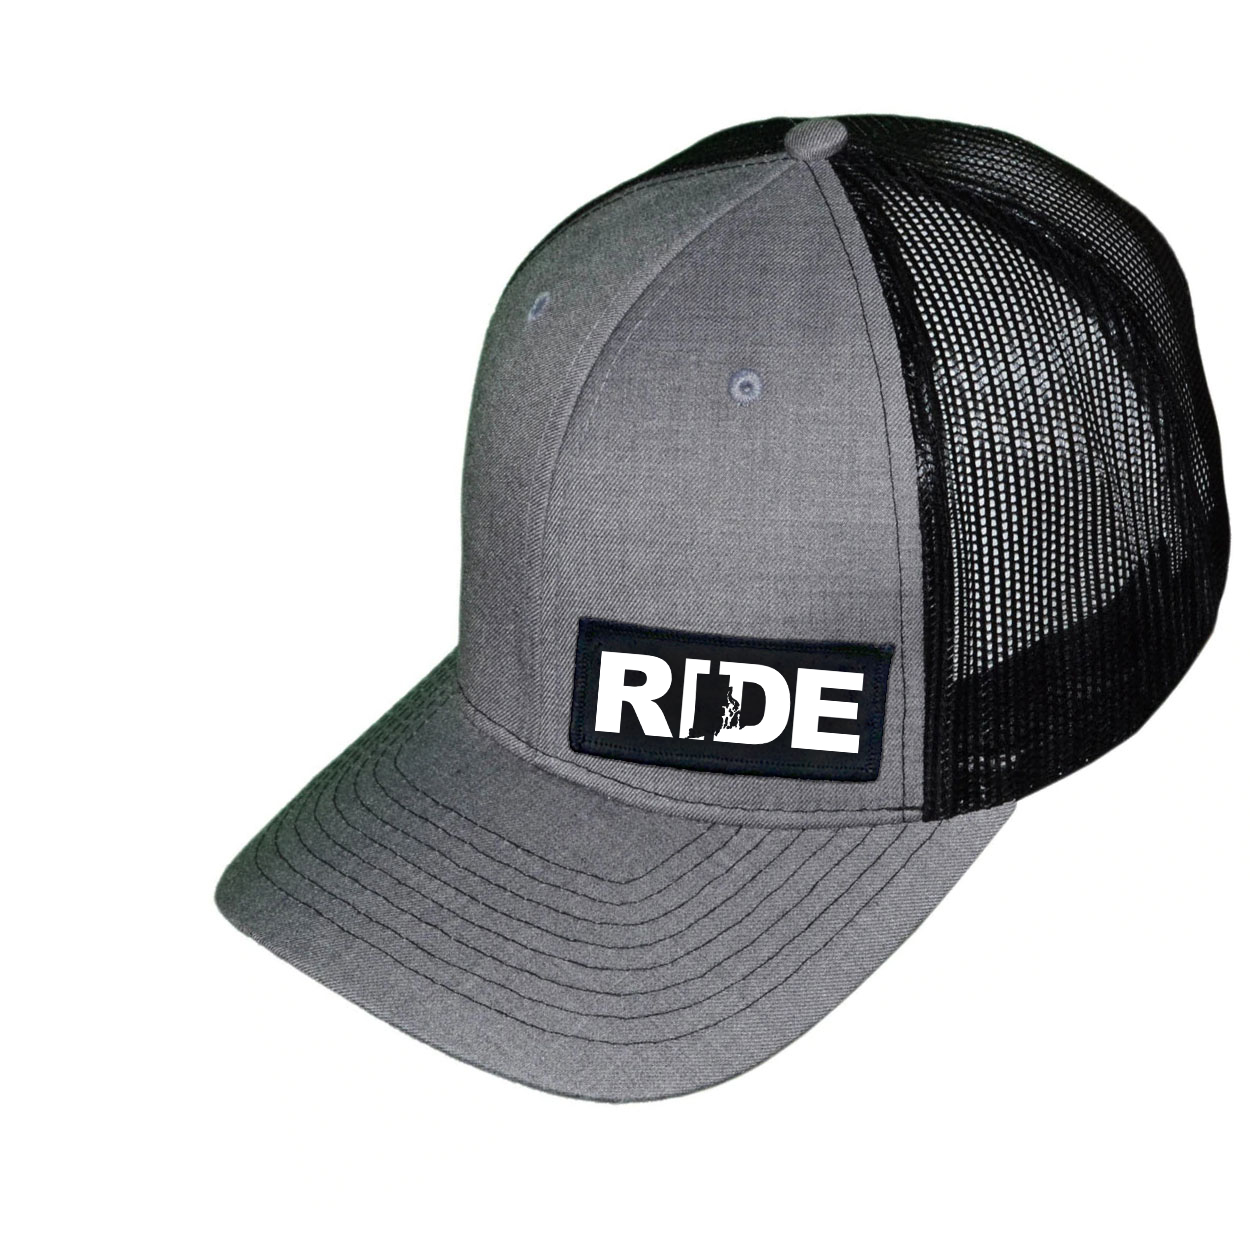 Ride Rhode Island Night Out Woven Patch Snapback Trucker Hat Heather Gray/Black (White Logo)